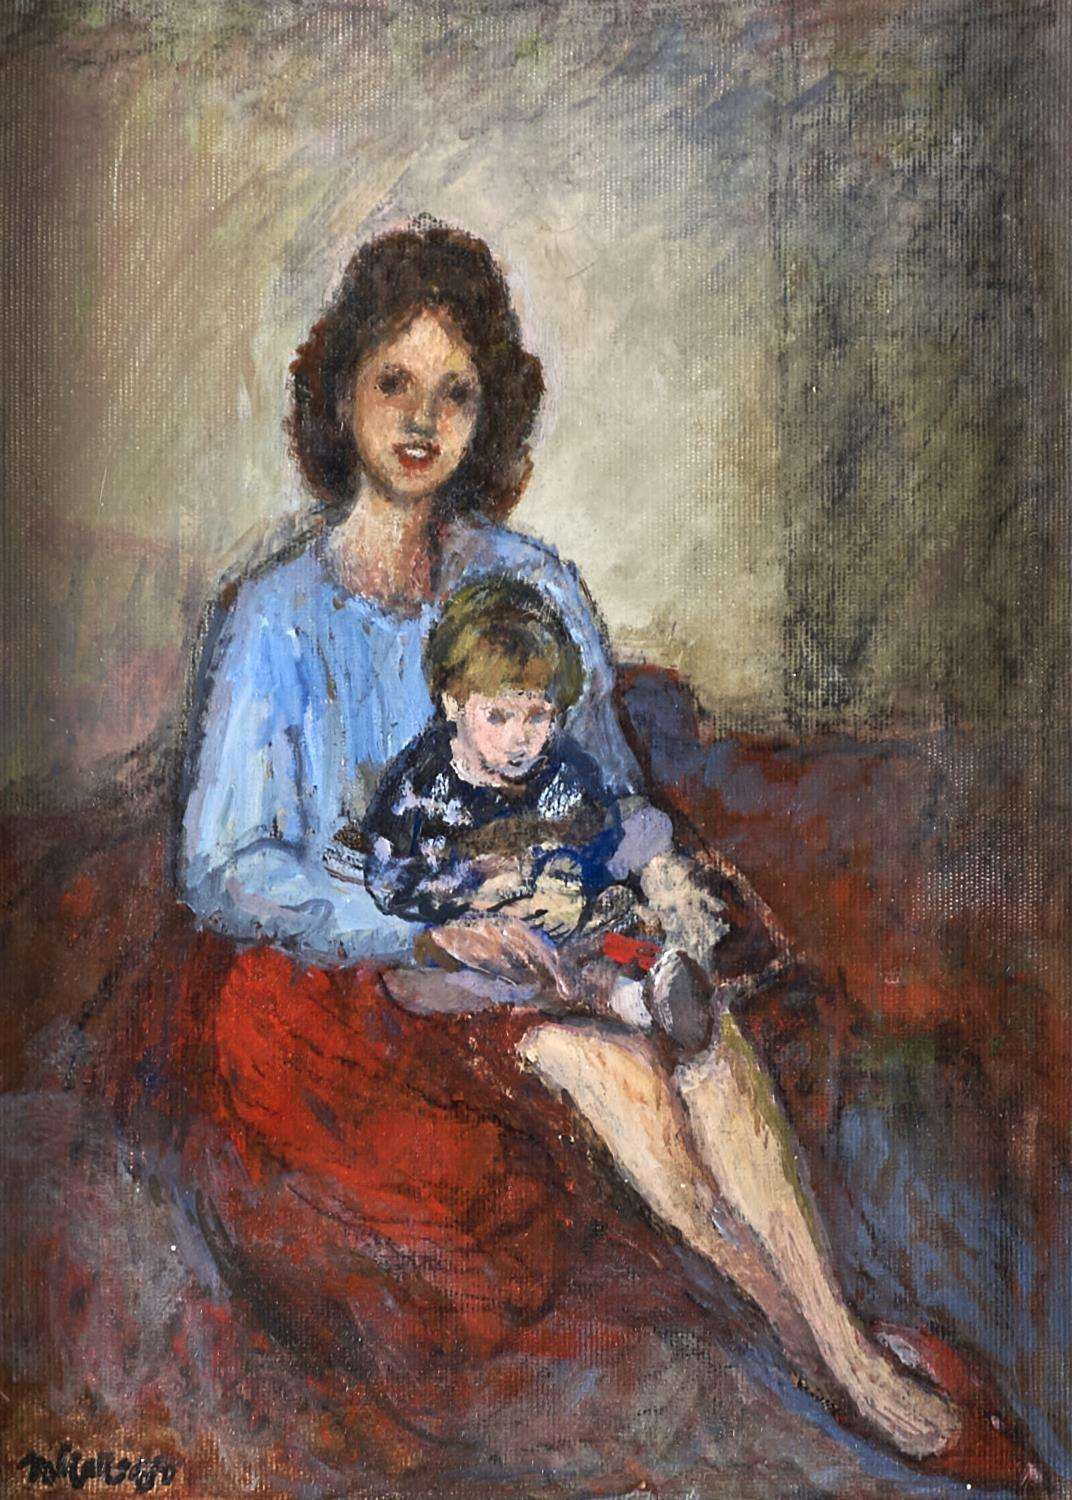 CHARLES JAMES MCCALL (1907-1989) -MOTHER AND CHILD, SIGNED AND DATED '88, OIL ON BOARD, 28 X 20.